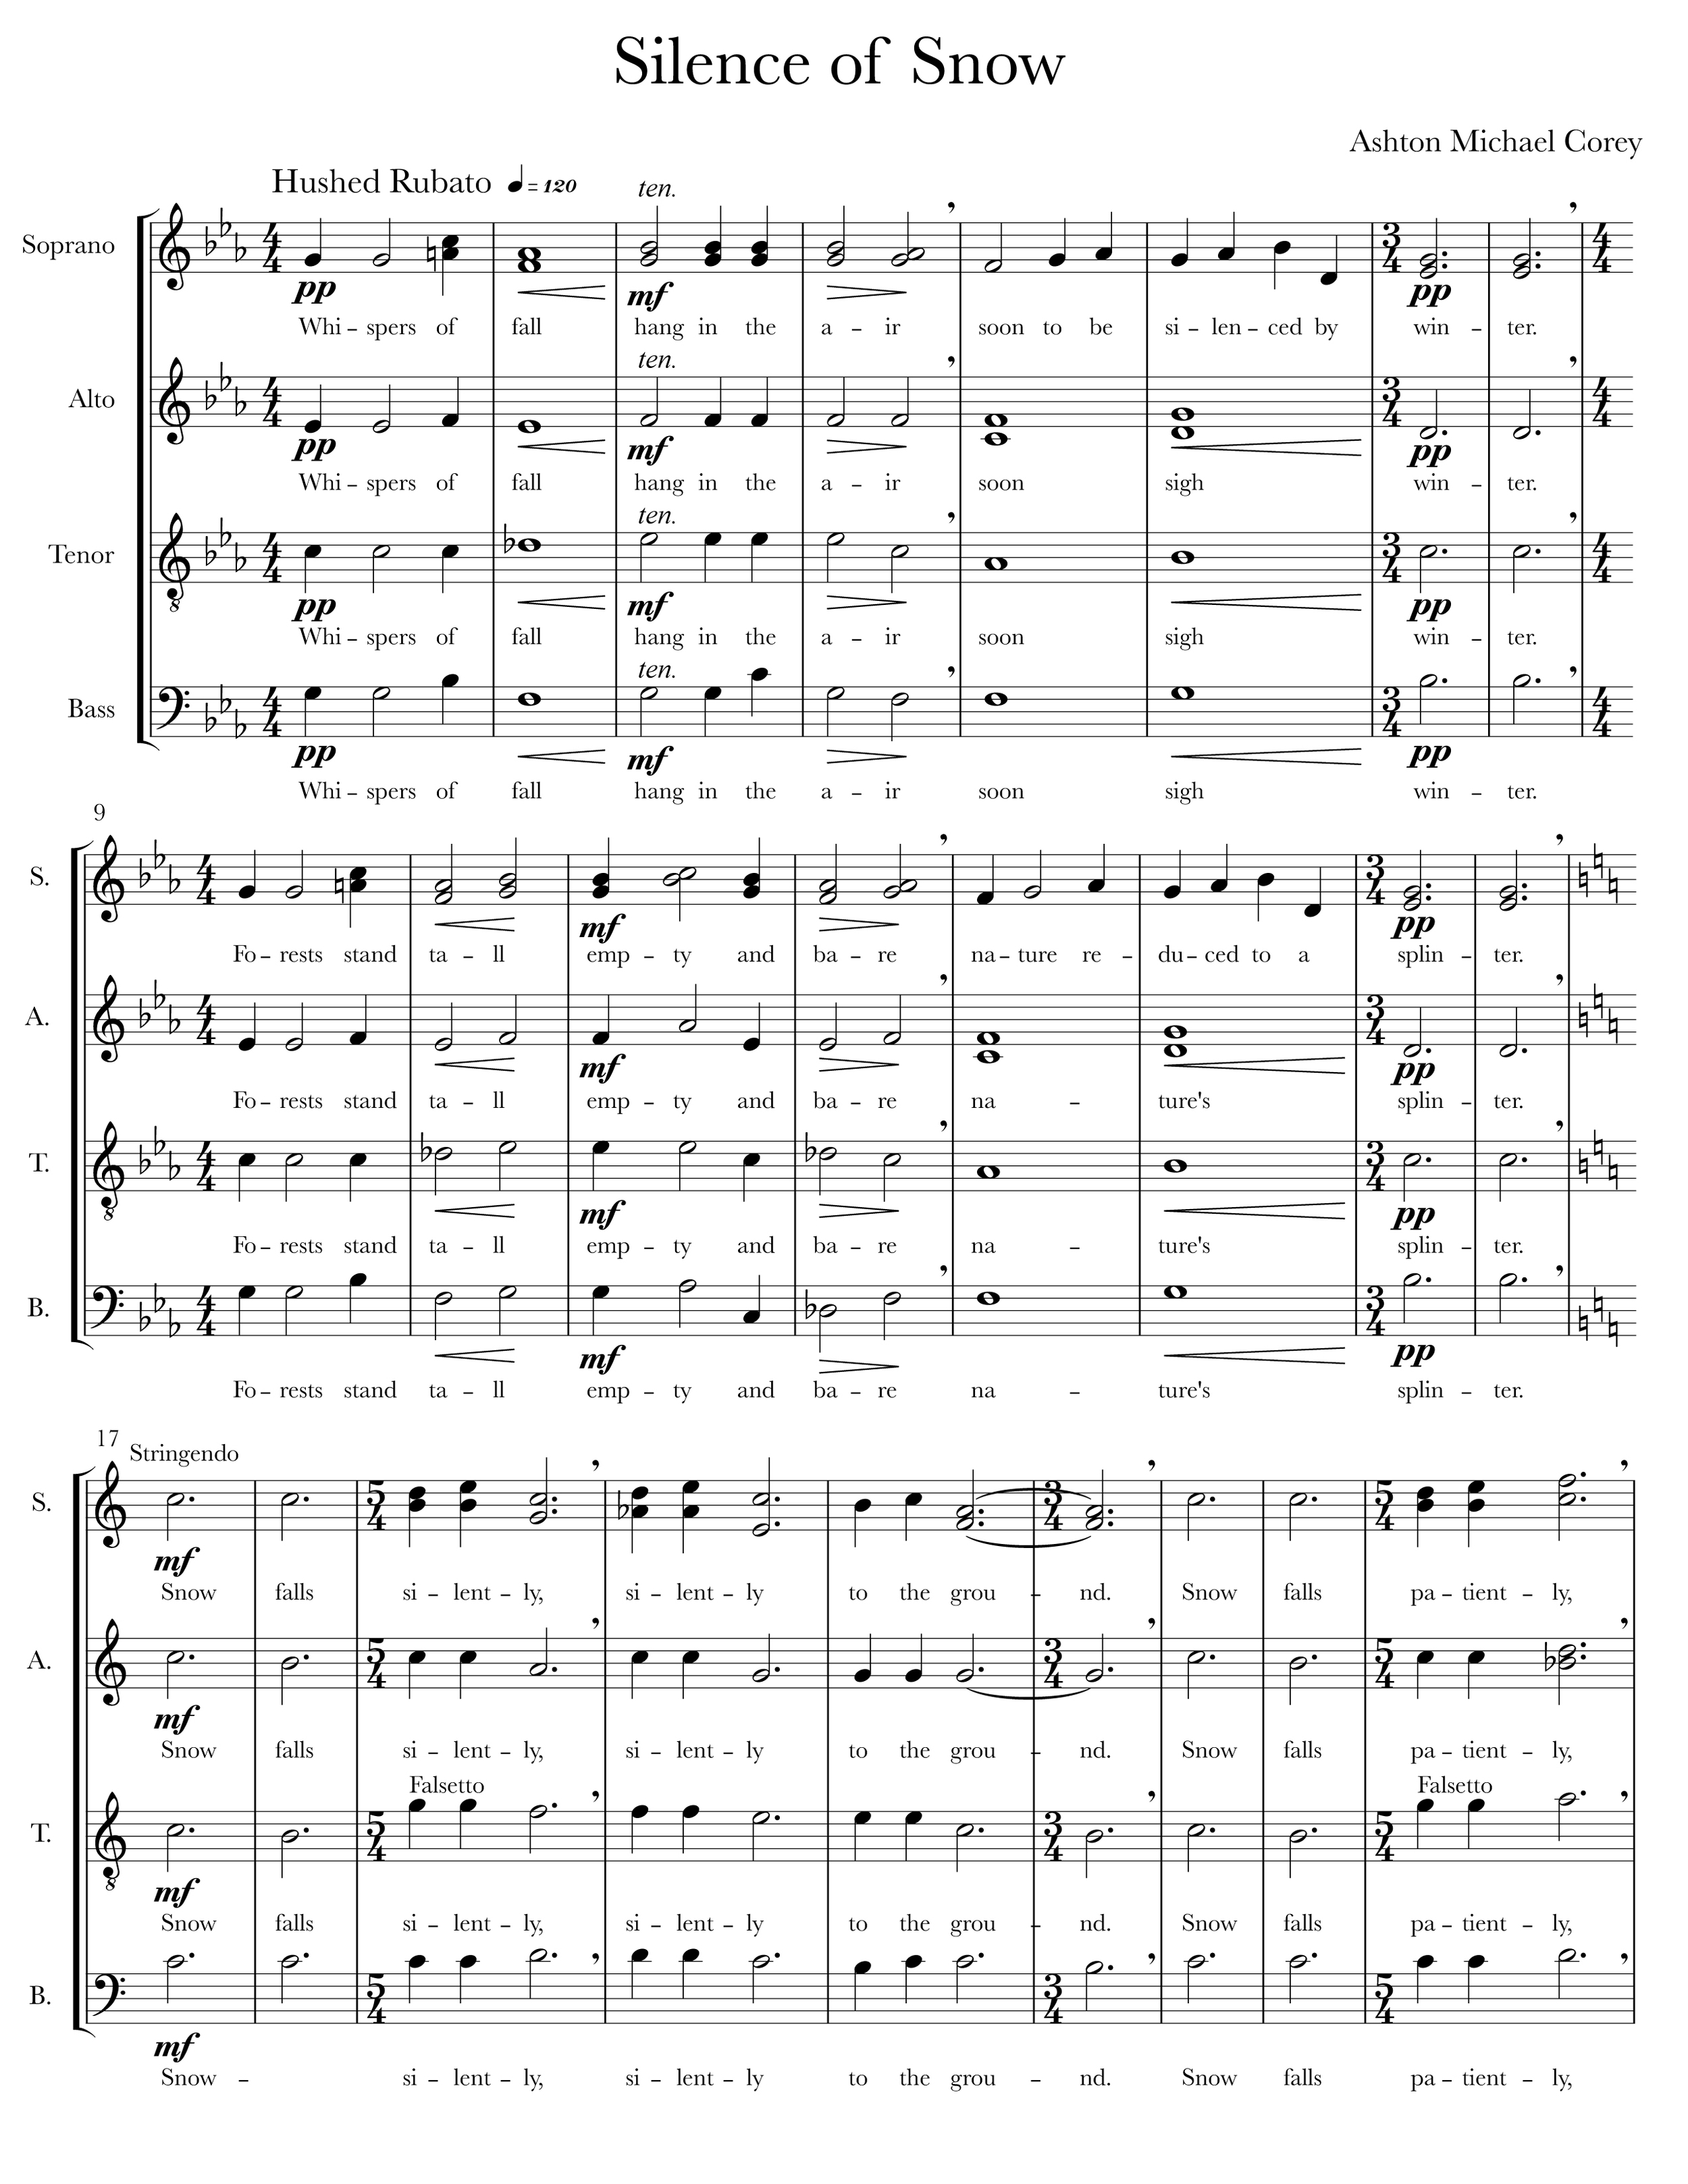 Complete sheet music available upon request.